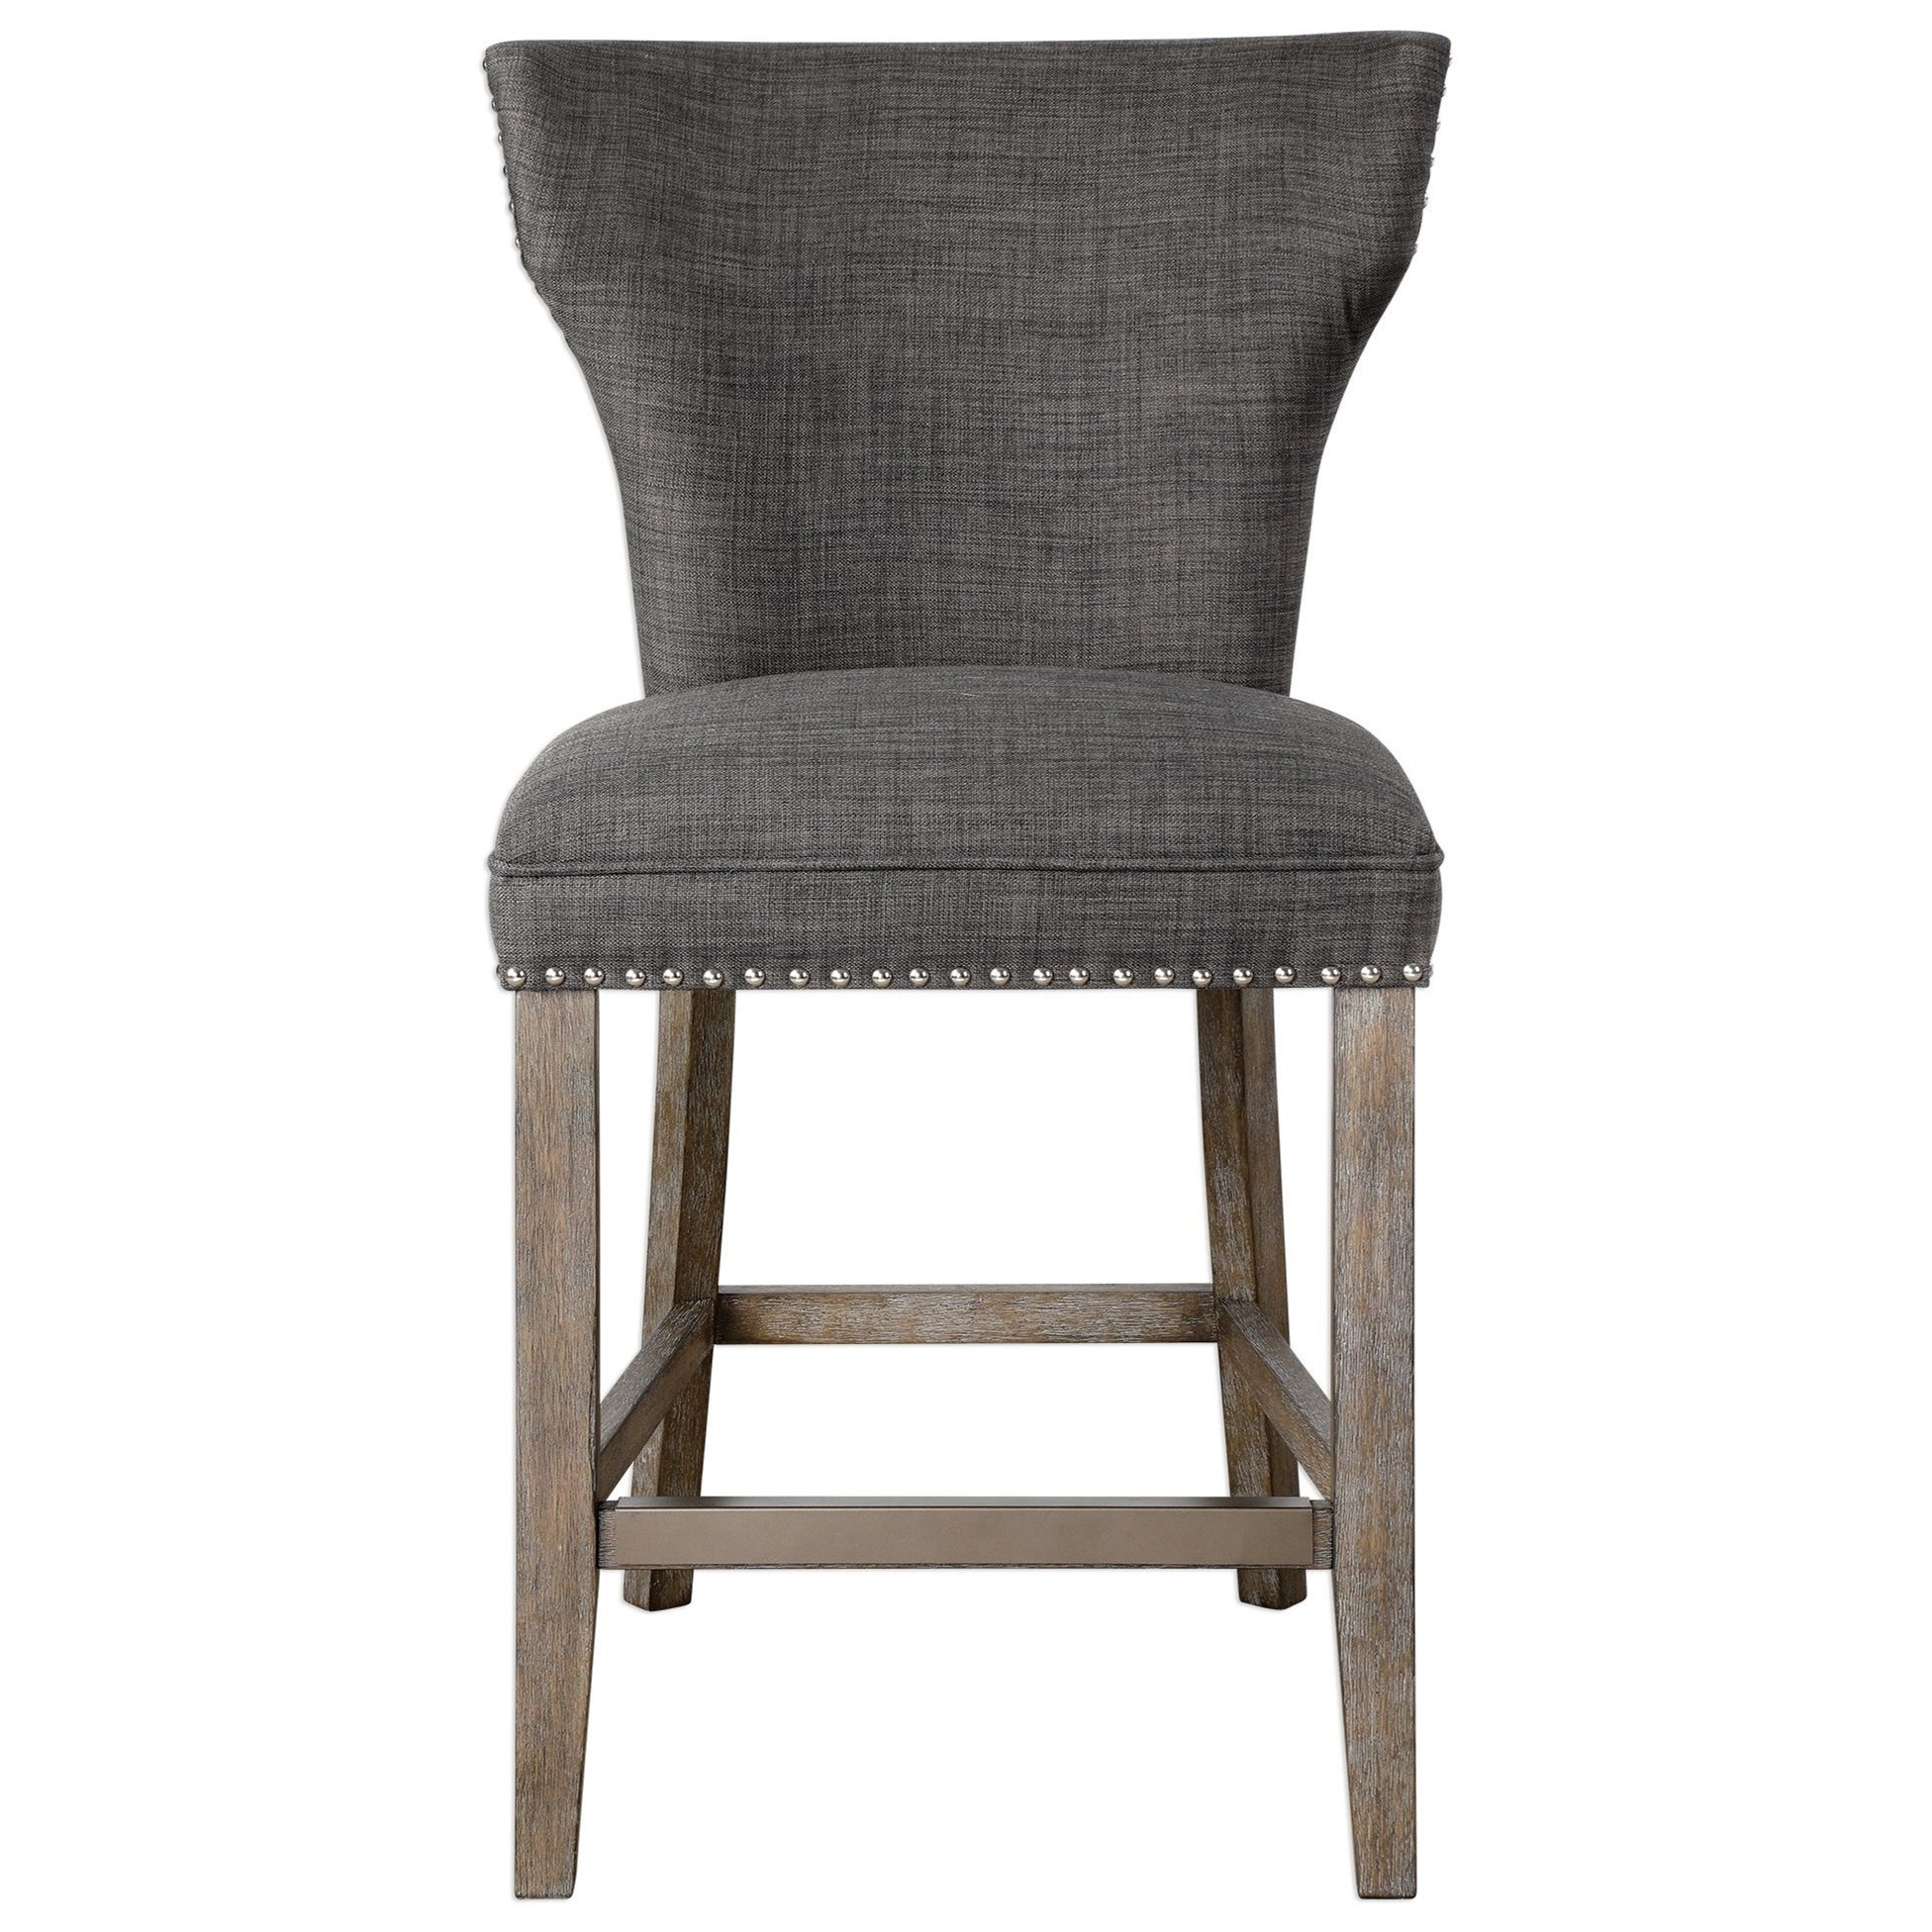 Accent Furniture - Stools Arnaud Charcoal Counter Stool by Uttermost at Stuckey Furniture